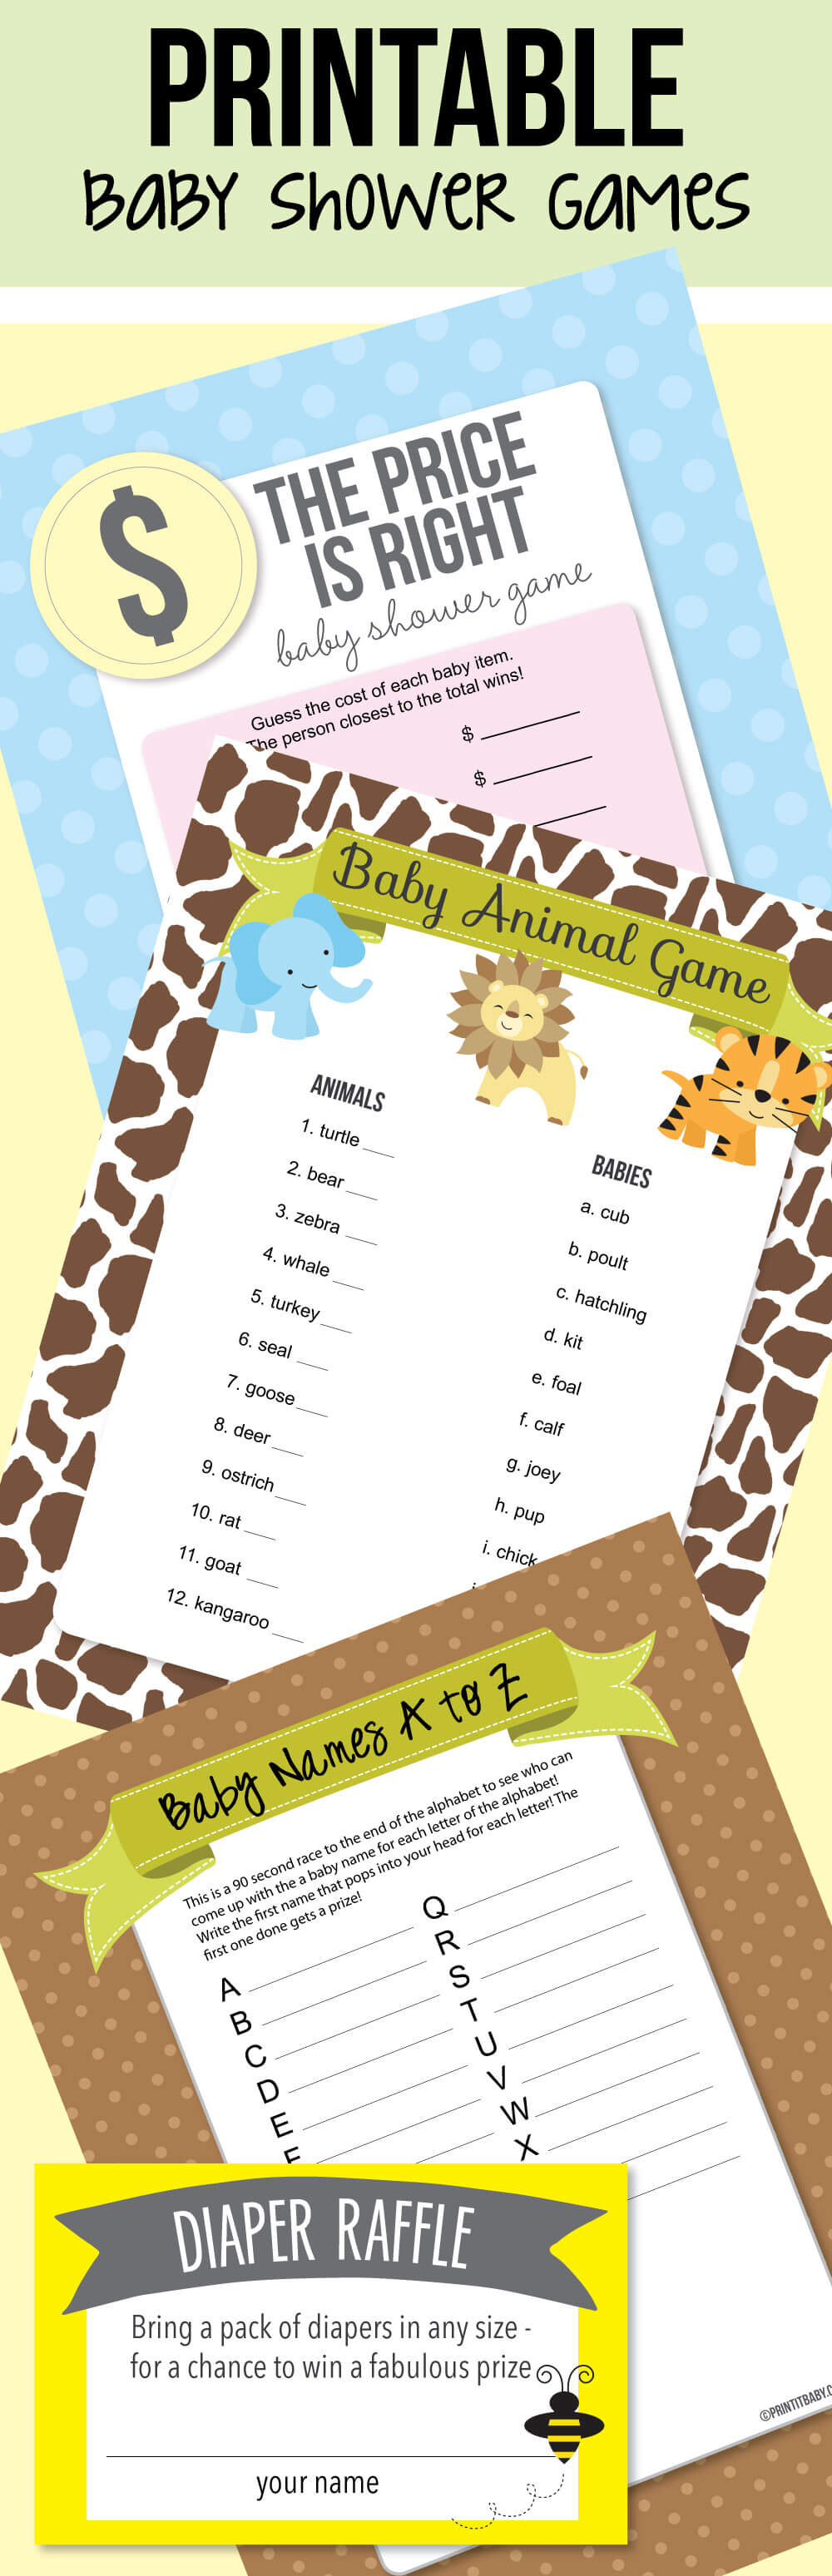 Image of printable baby shower games